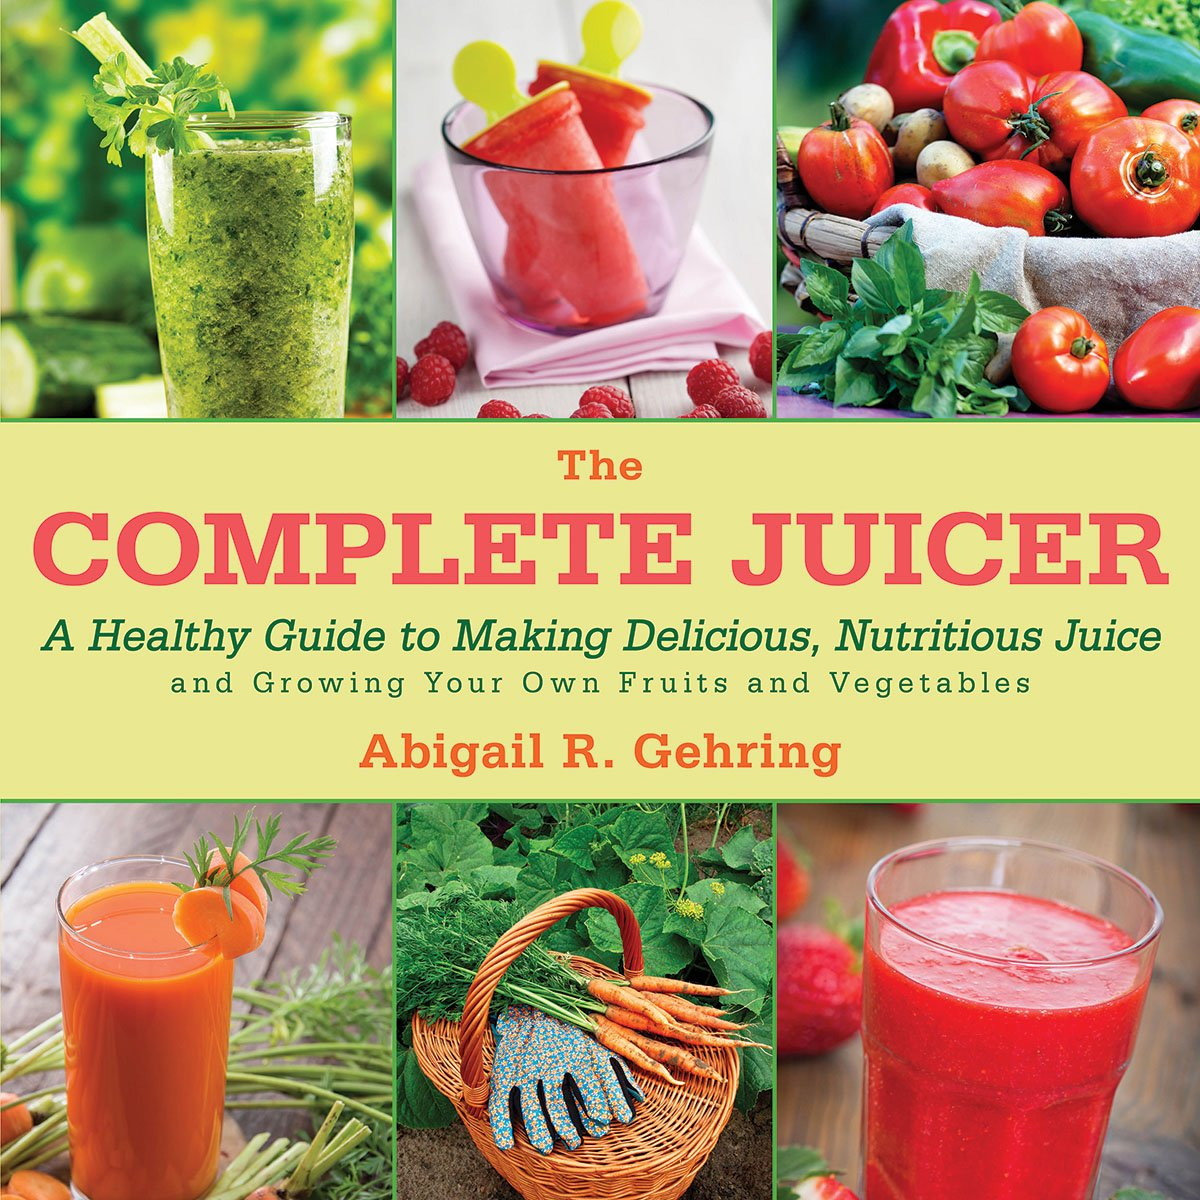 How to Juice: 6 Steps & Expert Tips